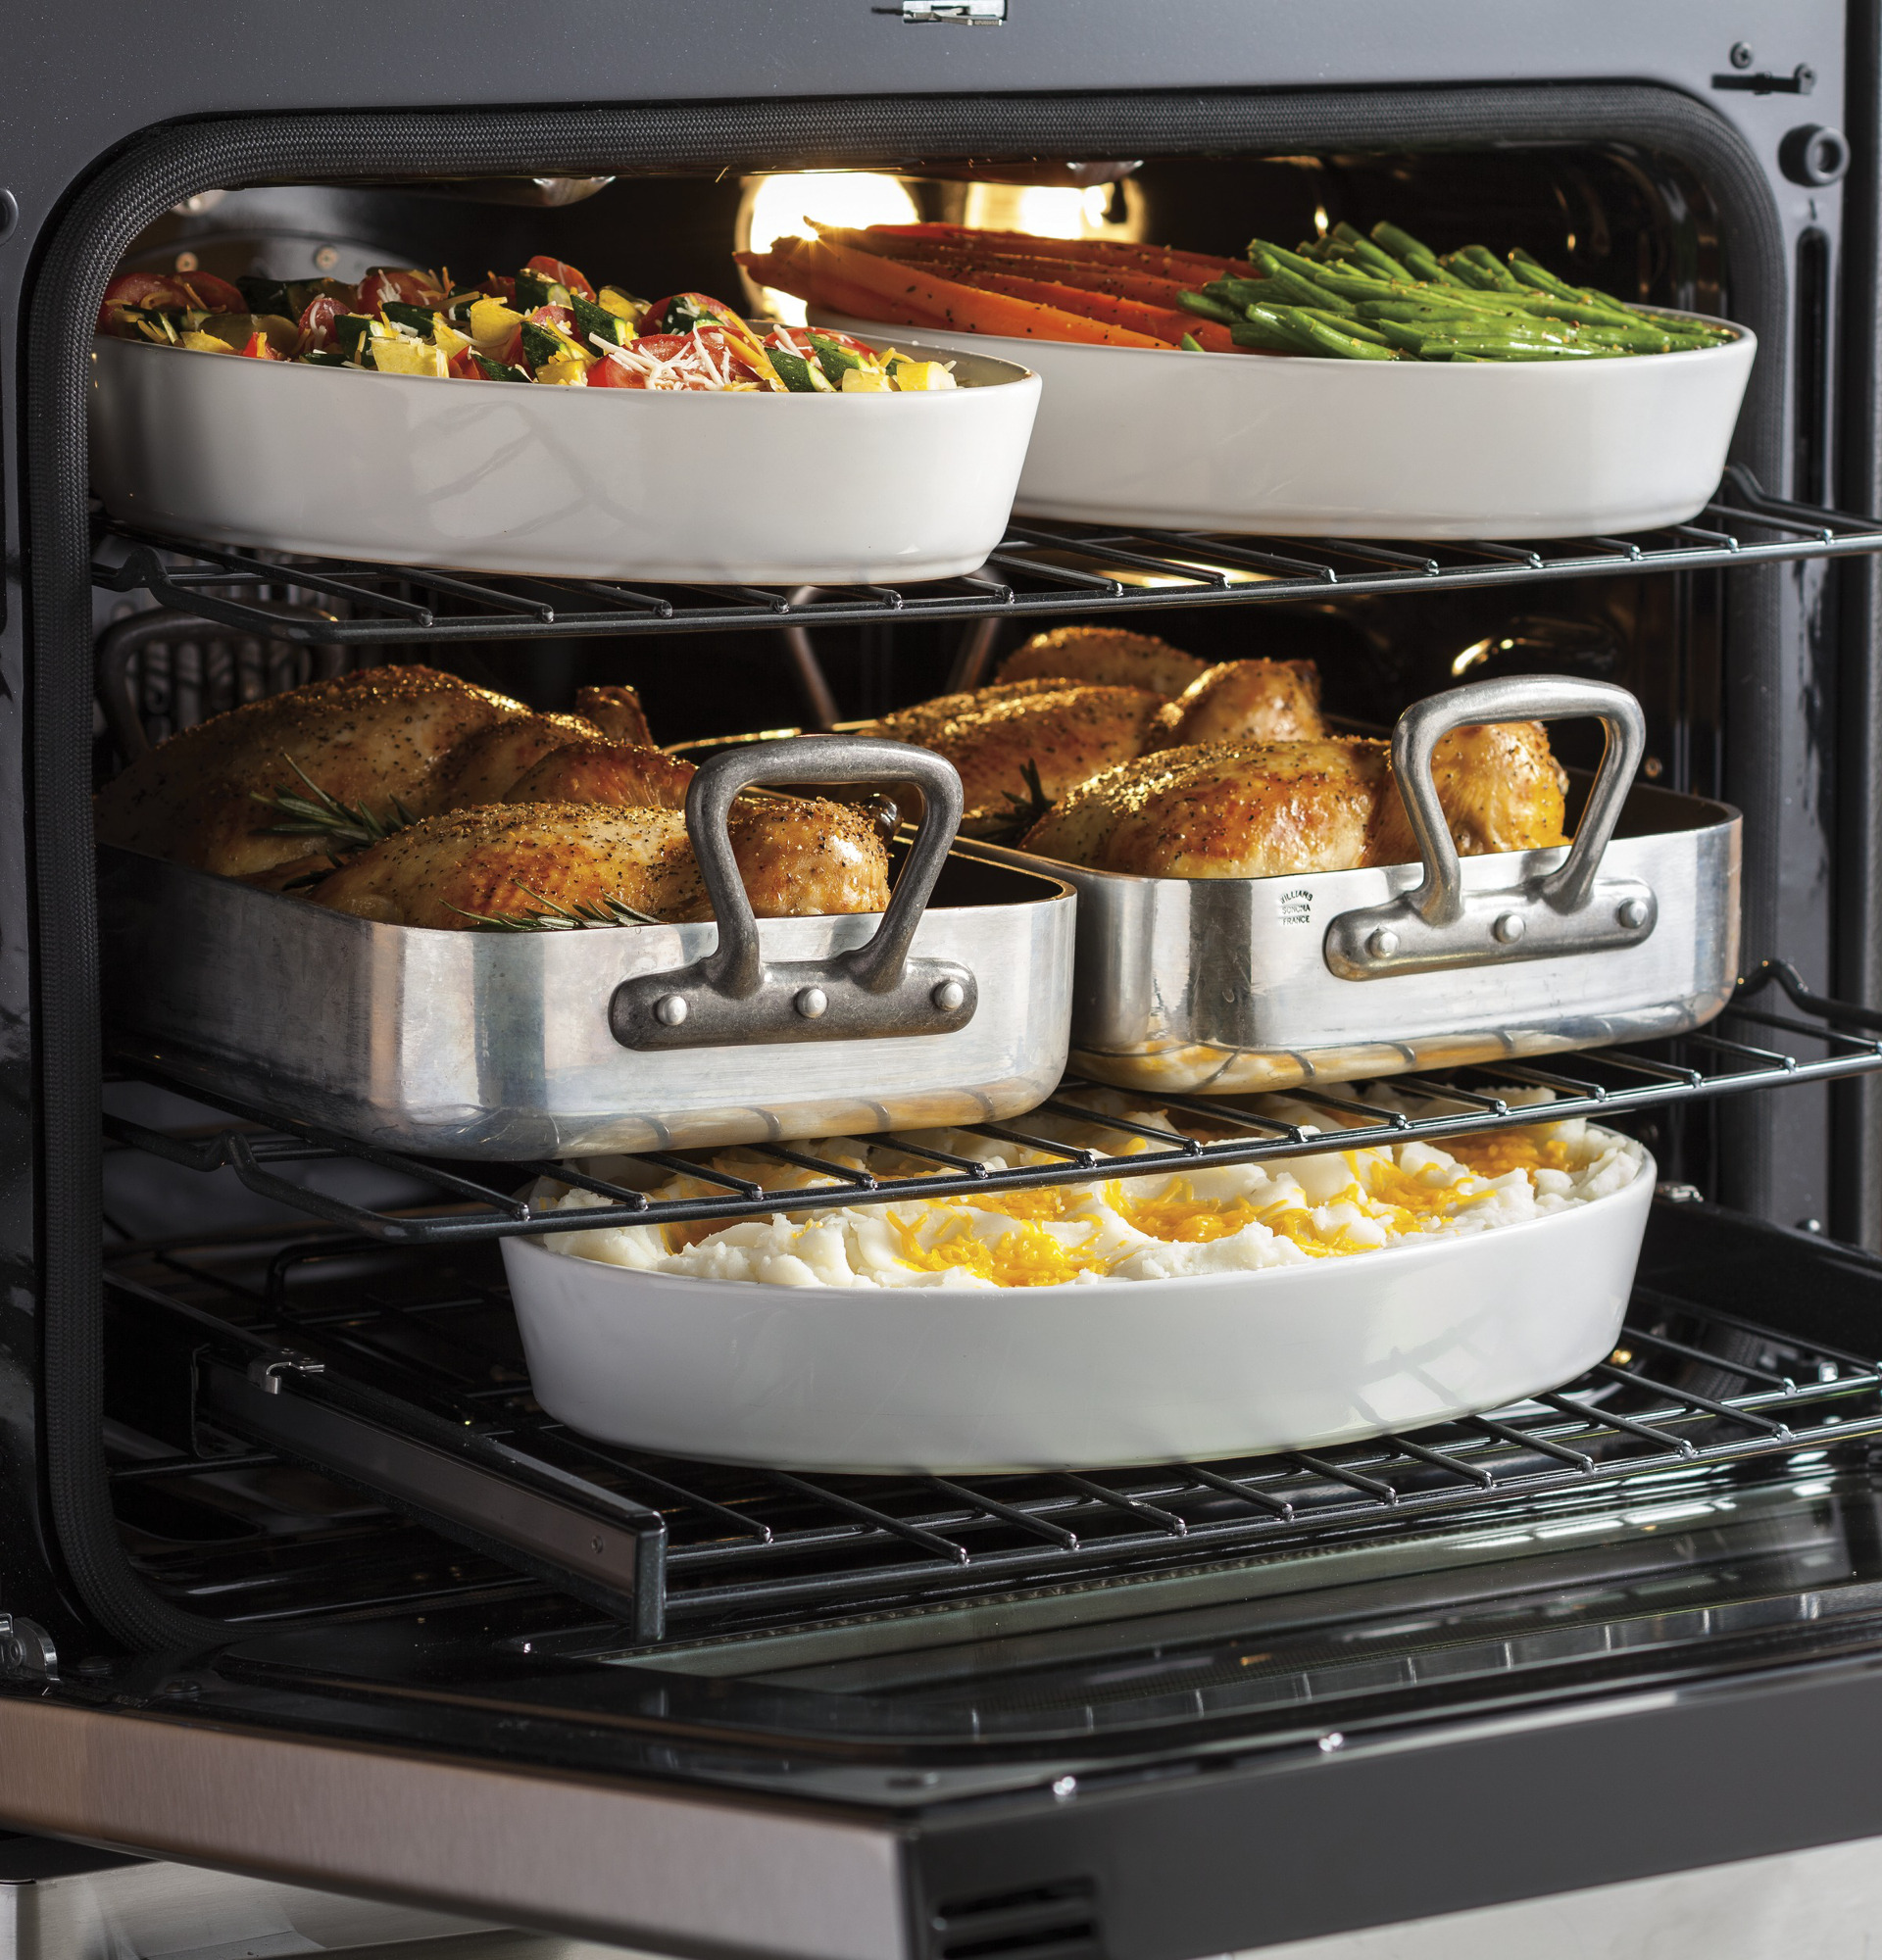 GE Profile P2B940SEJSS 5.6 cu. ft. Dual-Fuel Convection Range w/ WiFi Connect - Stainless Steel